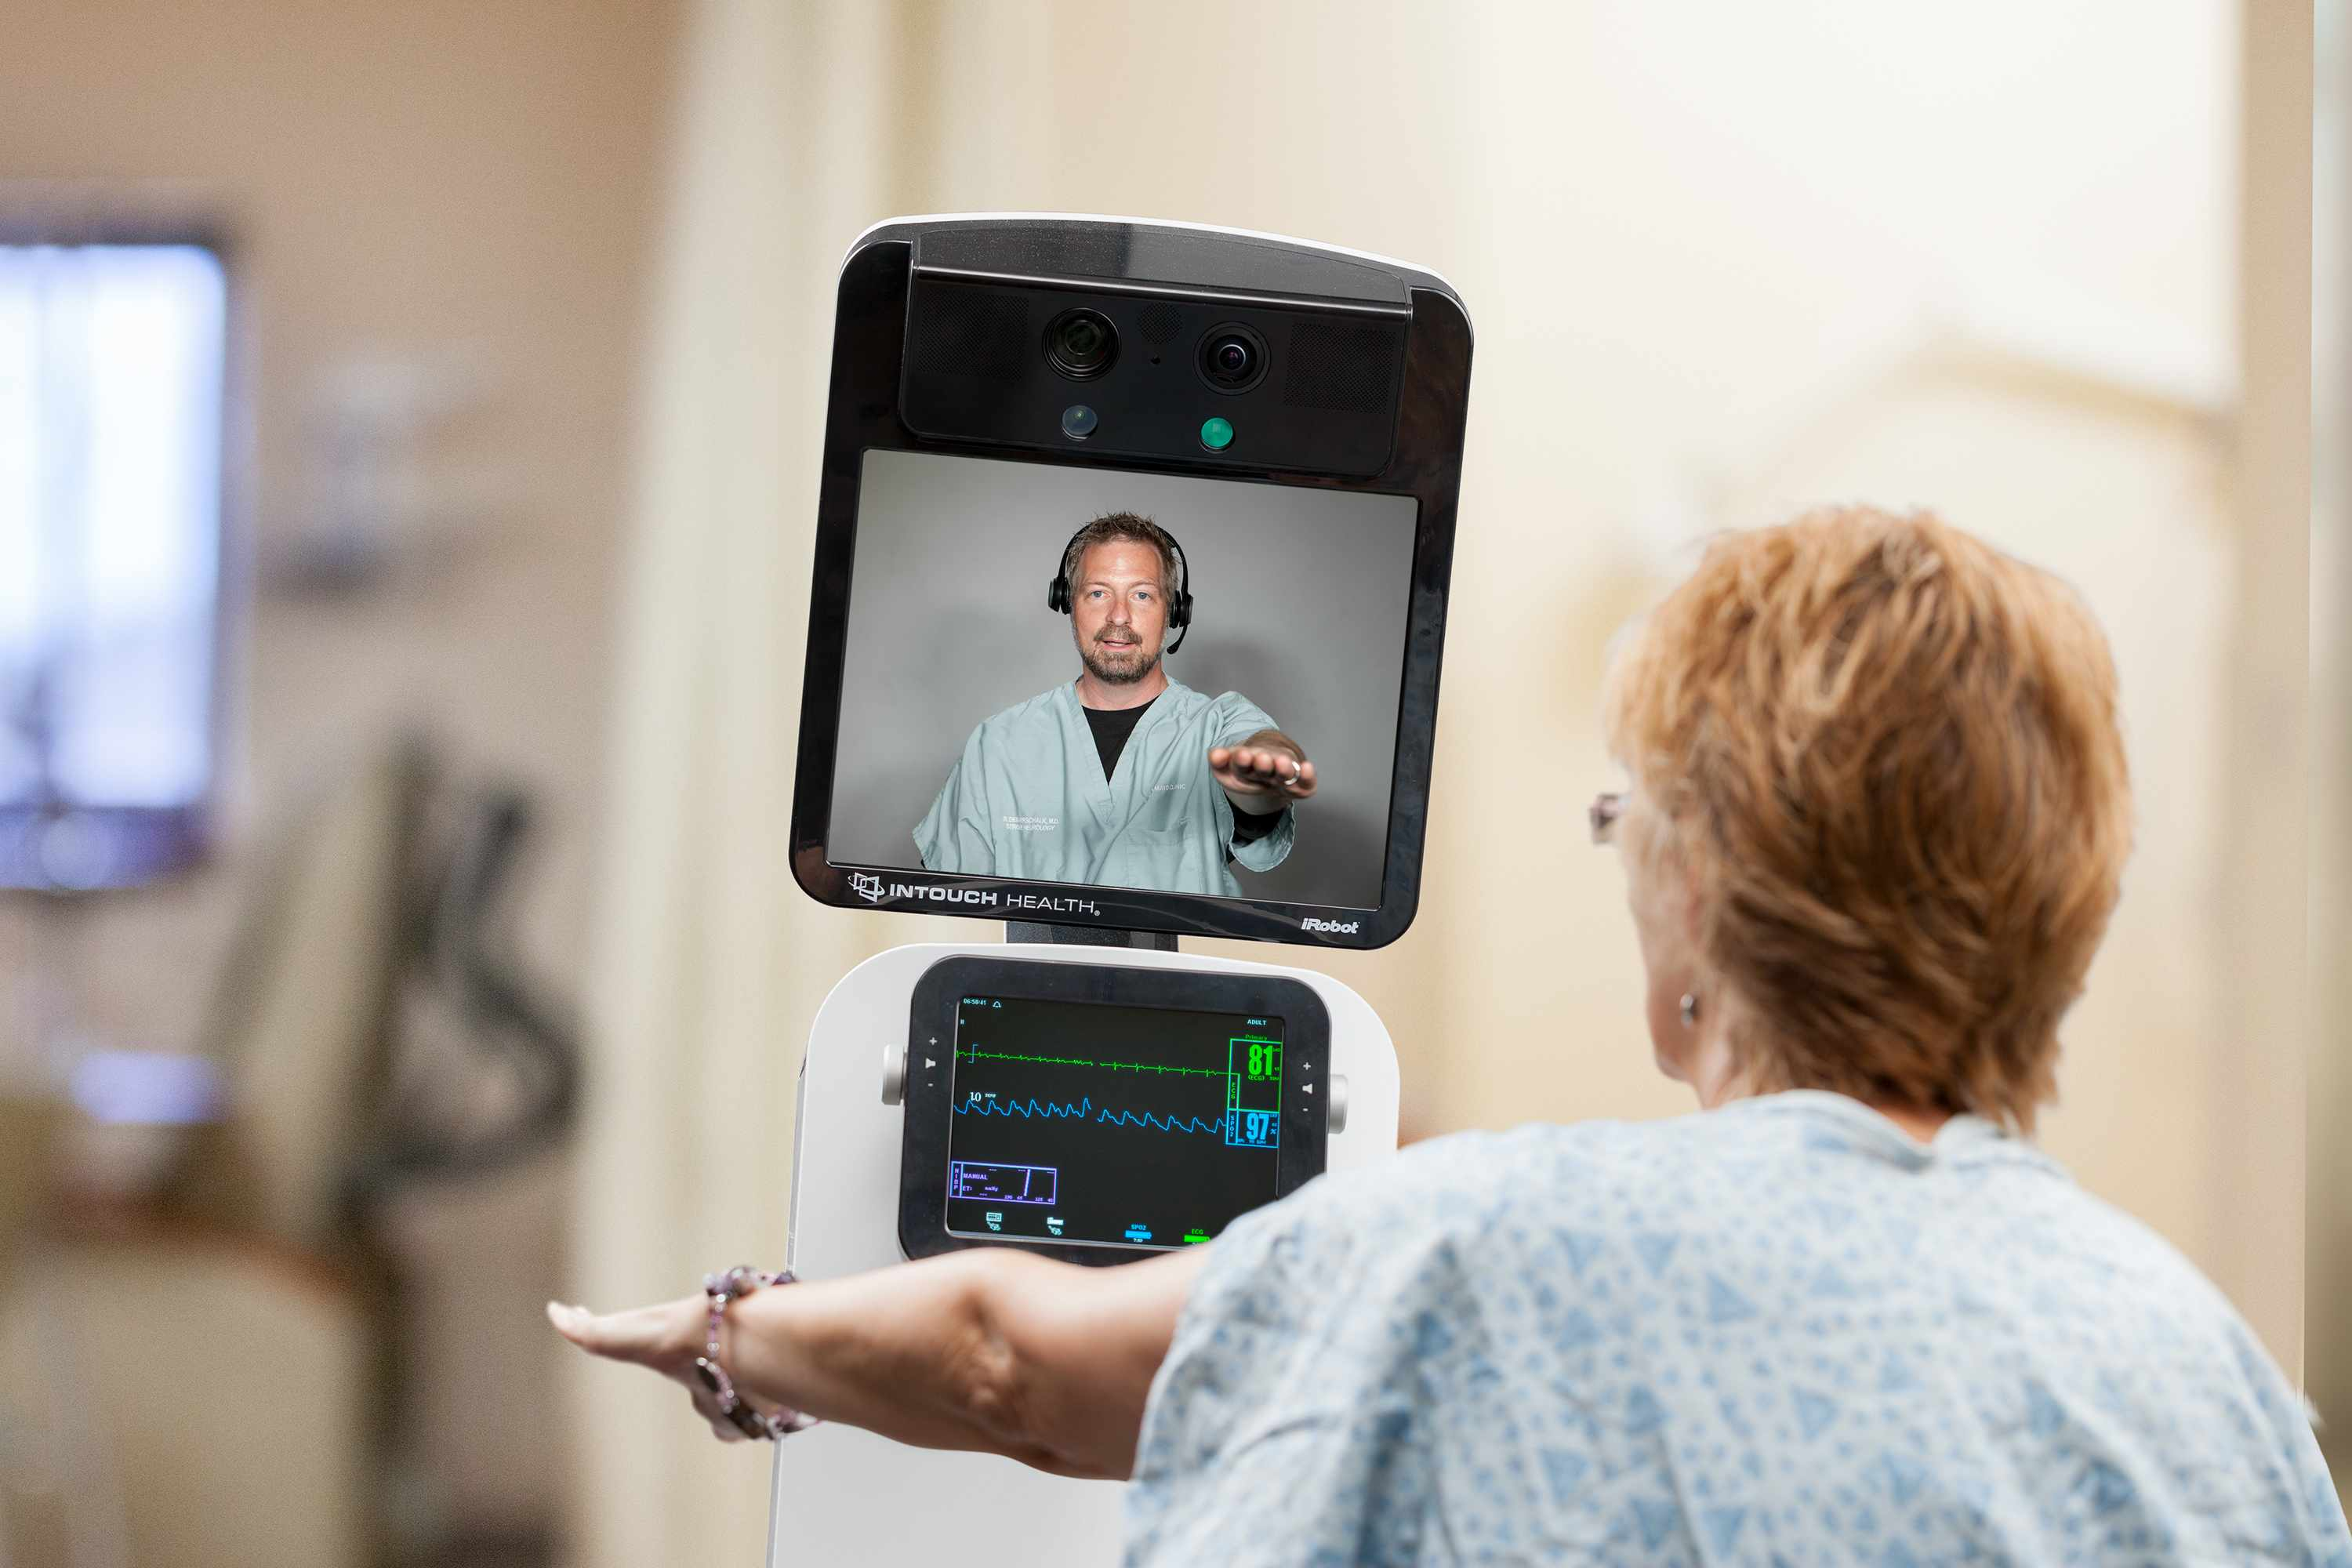 Patient looking at physician on telestroke machine